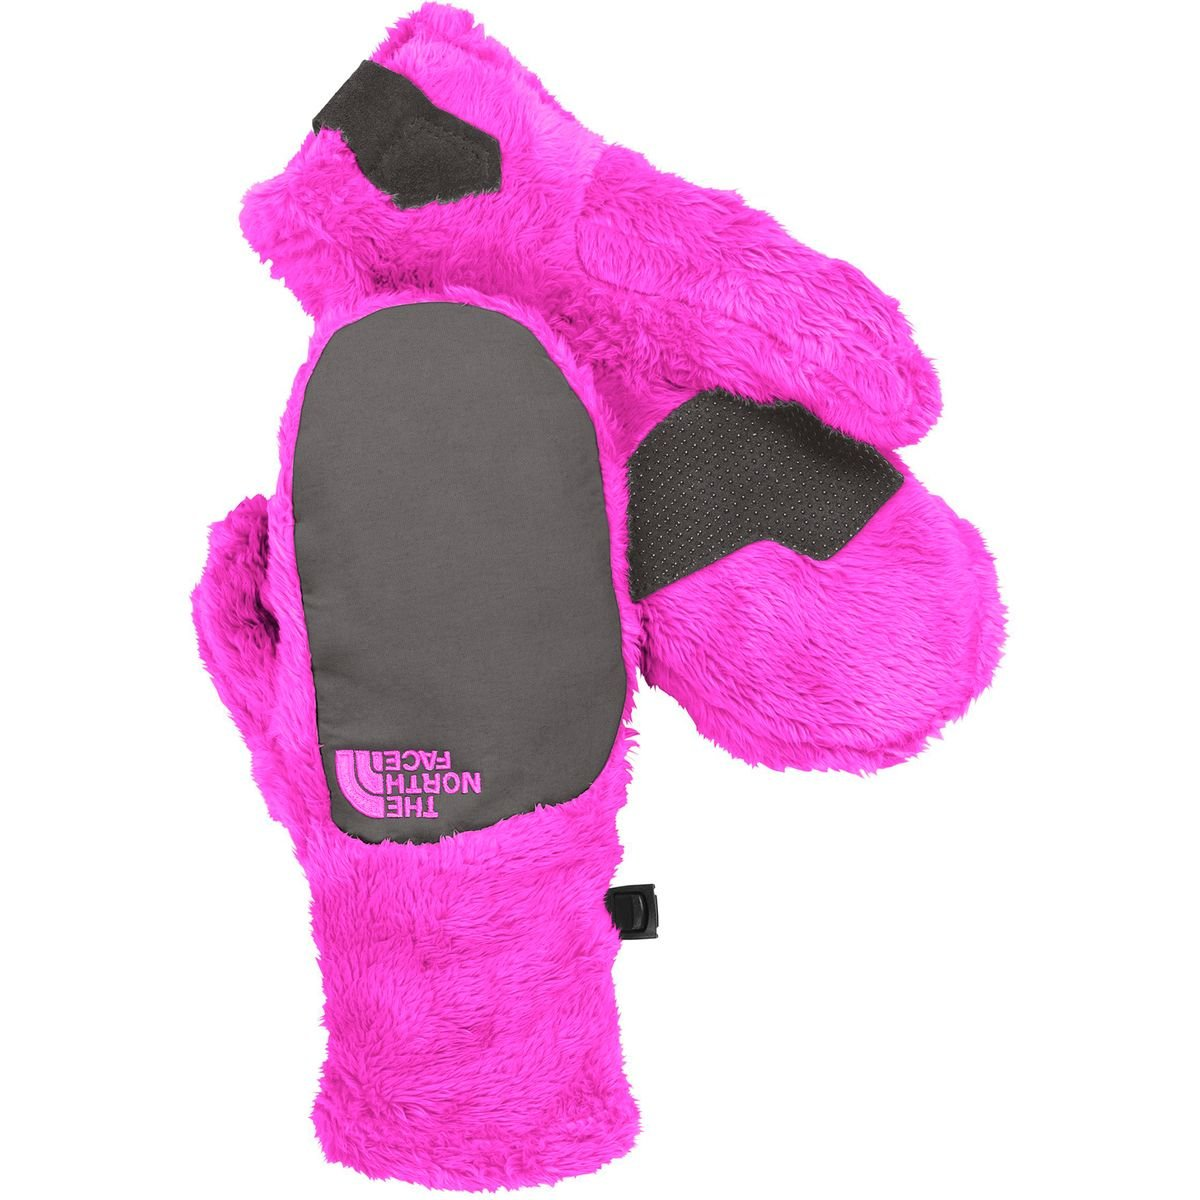 The North Face Denali Thermal Mitten - Girls' Luminous Pink/Graphite Grey, M CE53